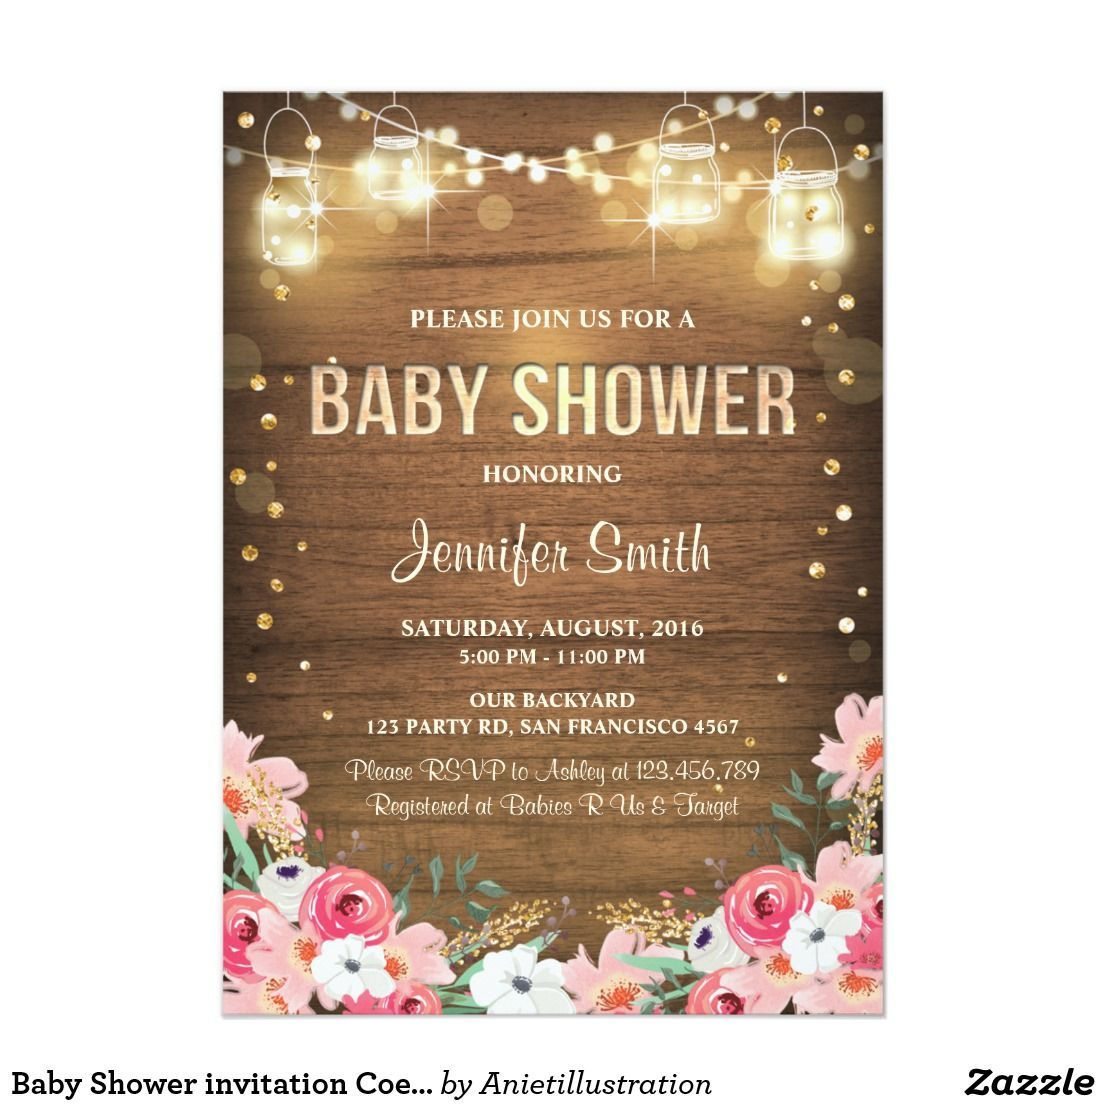 Baby shower invitation coed rustic floral garden baby shower baby shower invitation coed rustic floral garden filmwisefo